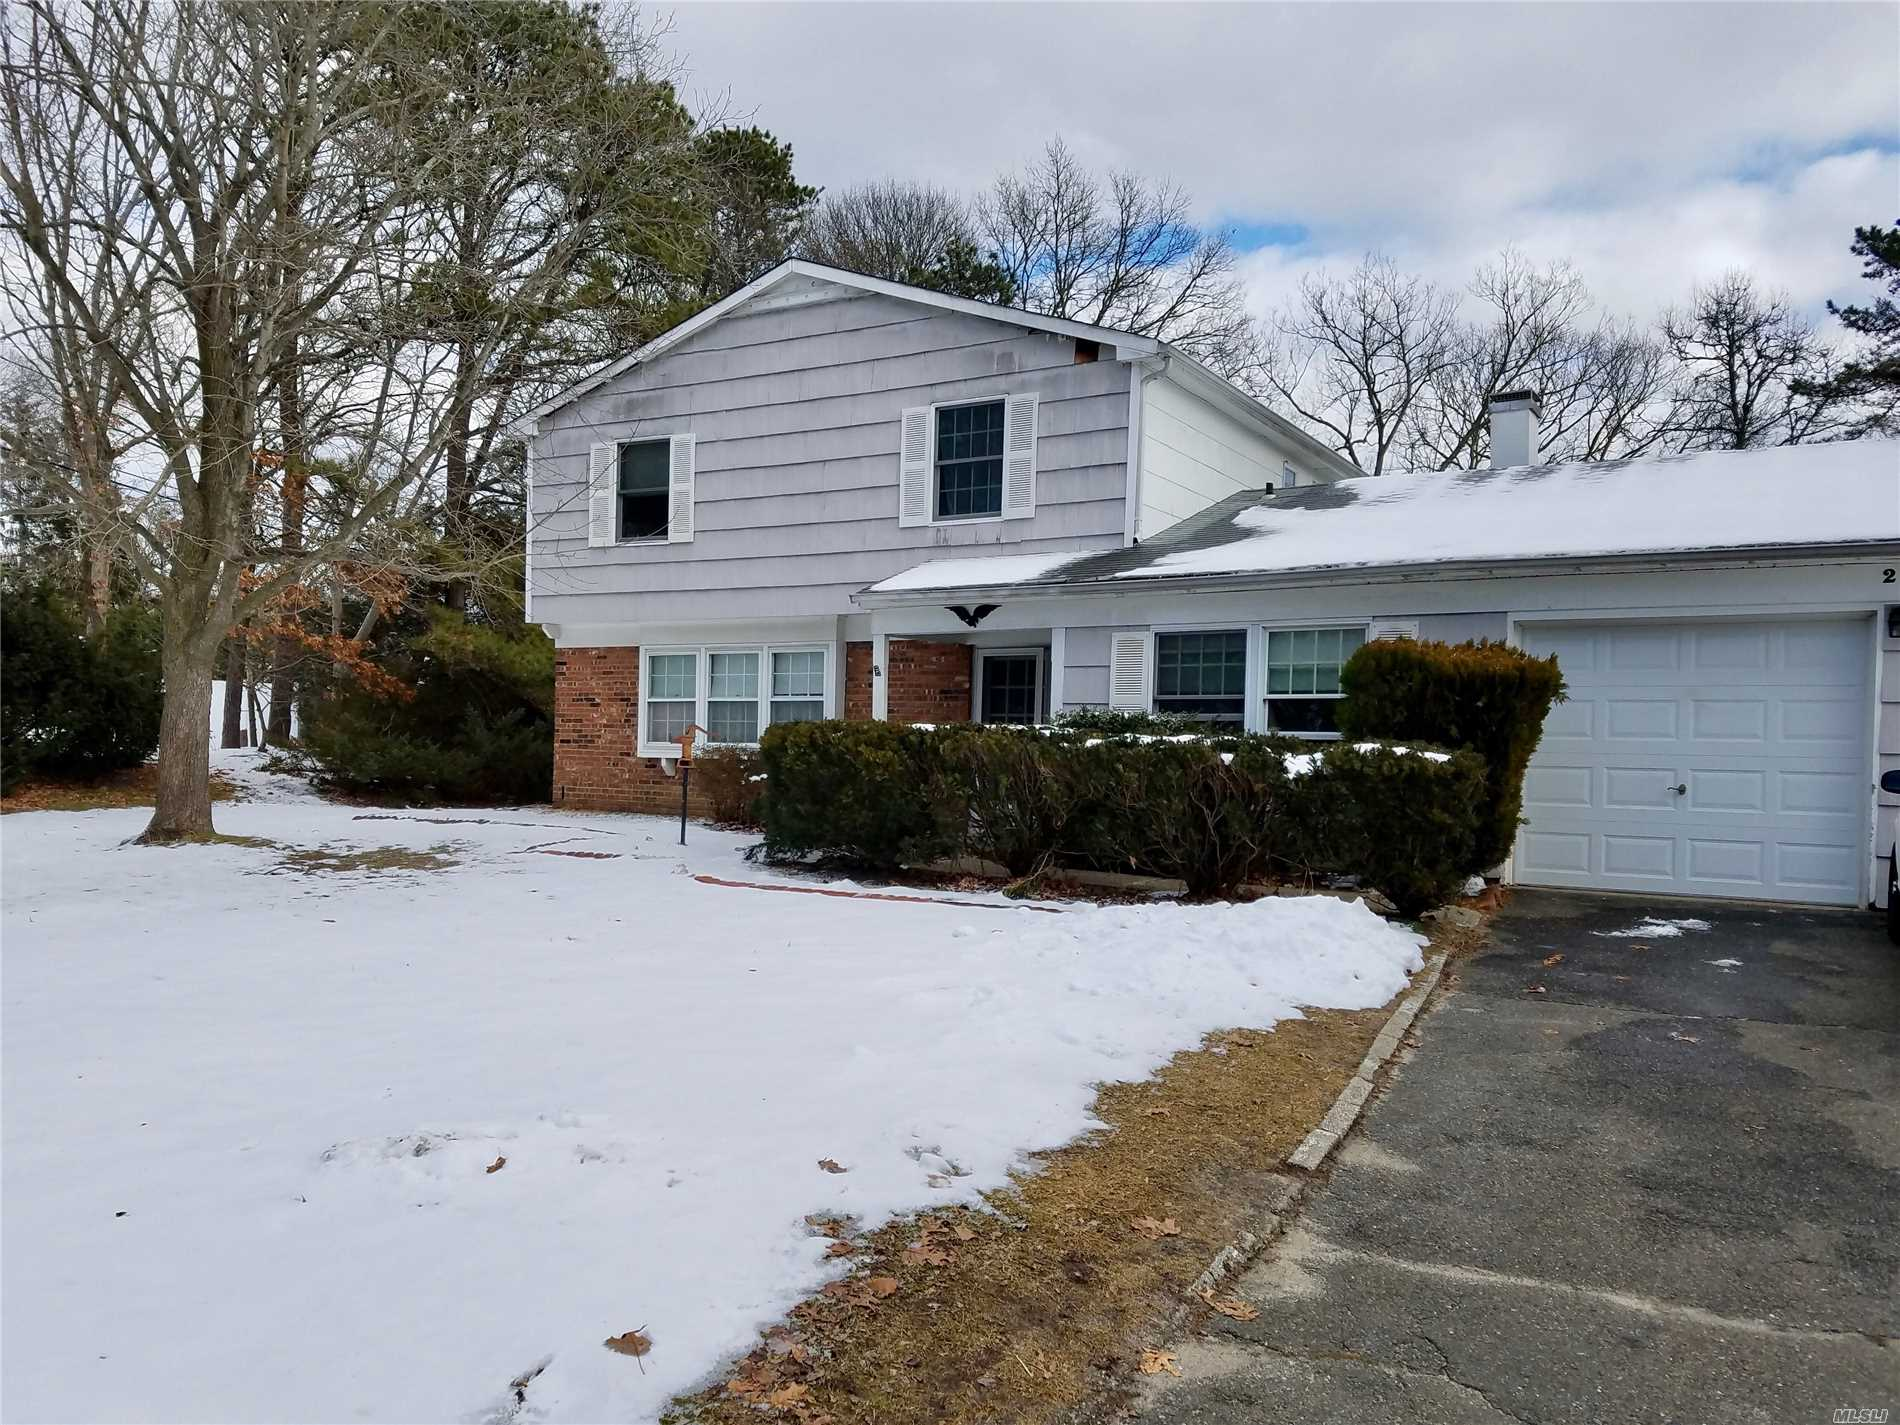 Spacious Colonial Style Home Located In The Tanglewood Forest Development Of Coram. Offering Three Bedrooms 2.5 Baths, Living Room, Den, Formal Dining Room Plus An Eat In Kitchen. Master Bedroom With Full Bath, Situated On A Half Acre Corner Property With A Two Car Attached Garage. Call For A Private Viewing To See What Great Potential This Home Has To Offer.